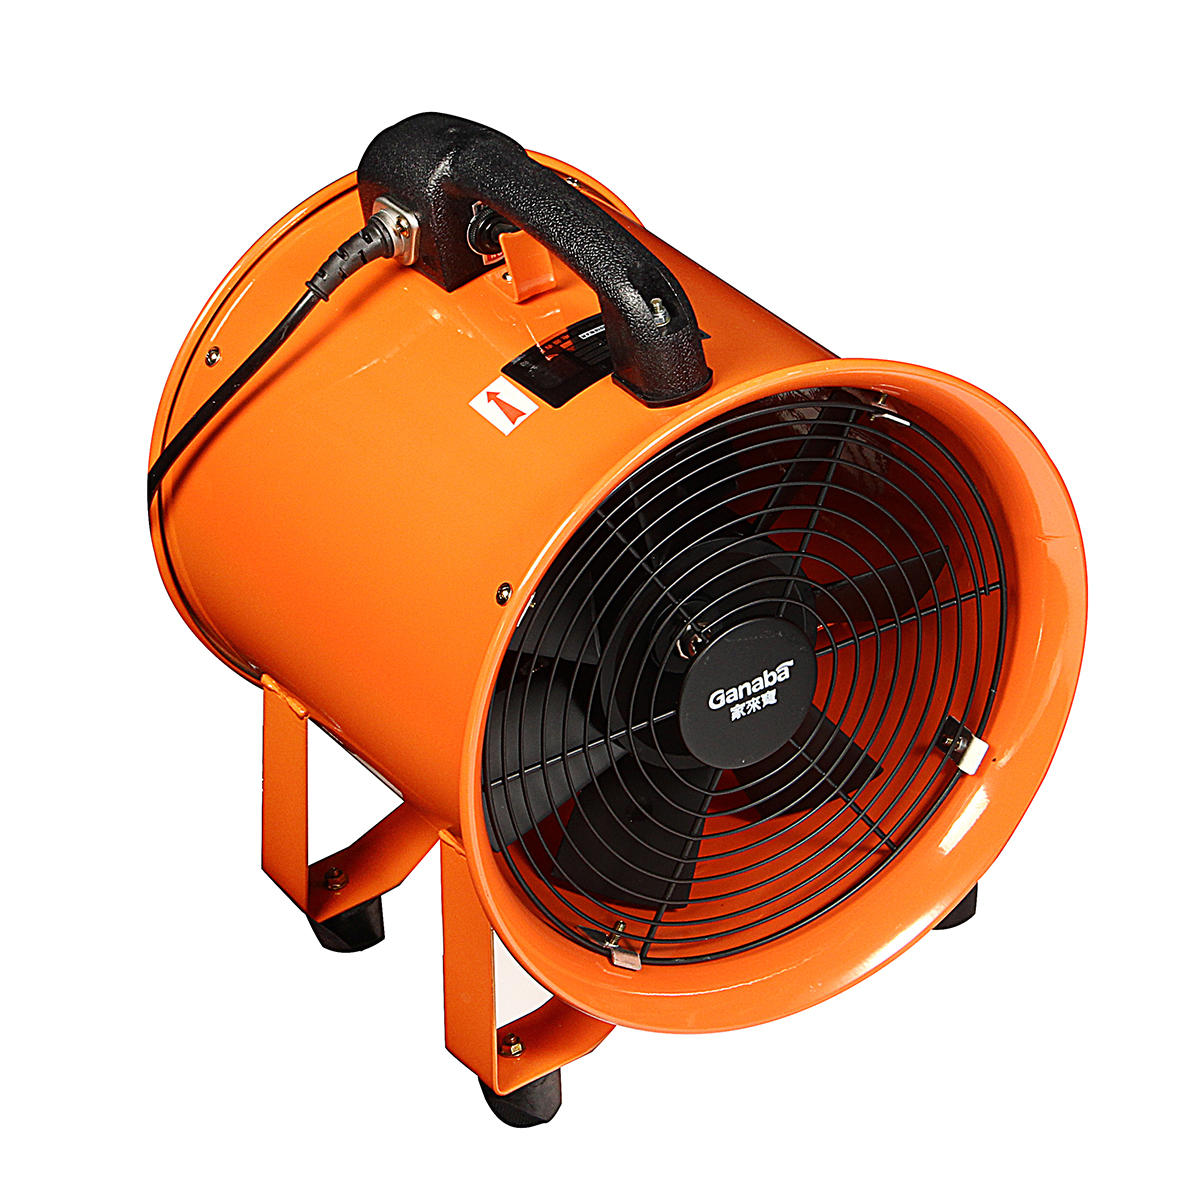 Industrial Portable Blower Fan : Portable ventilator axial ducting blower industrial